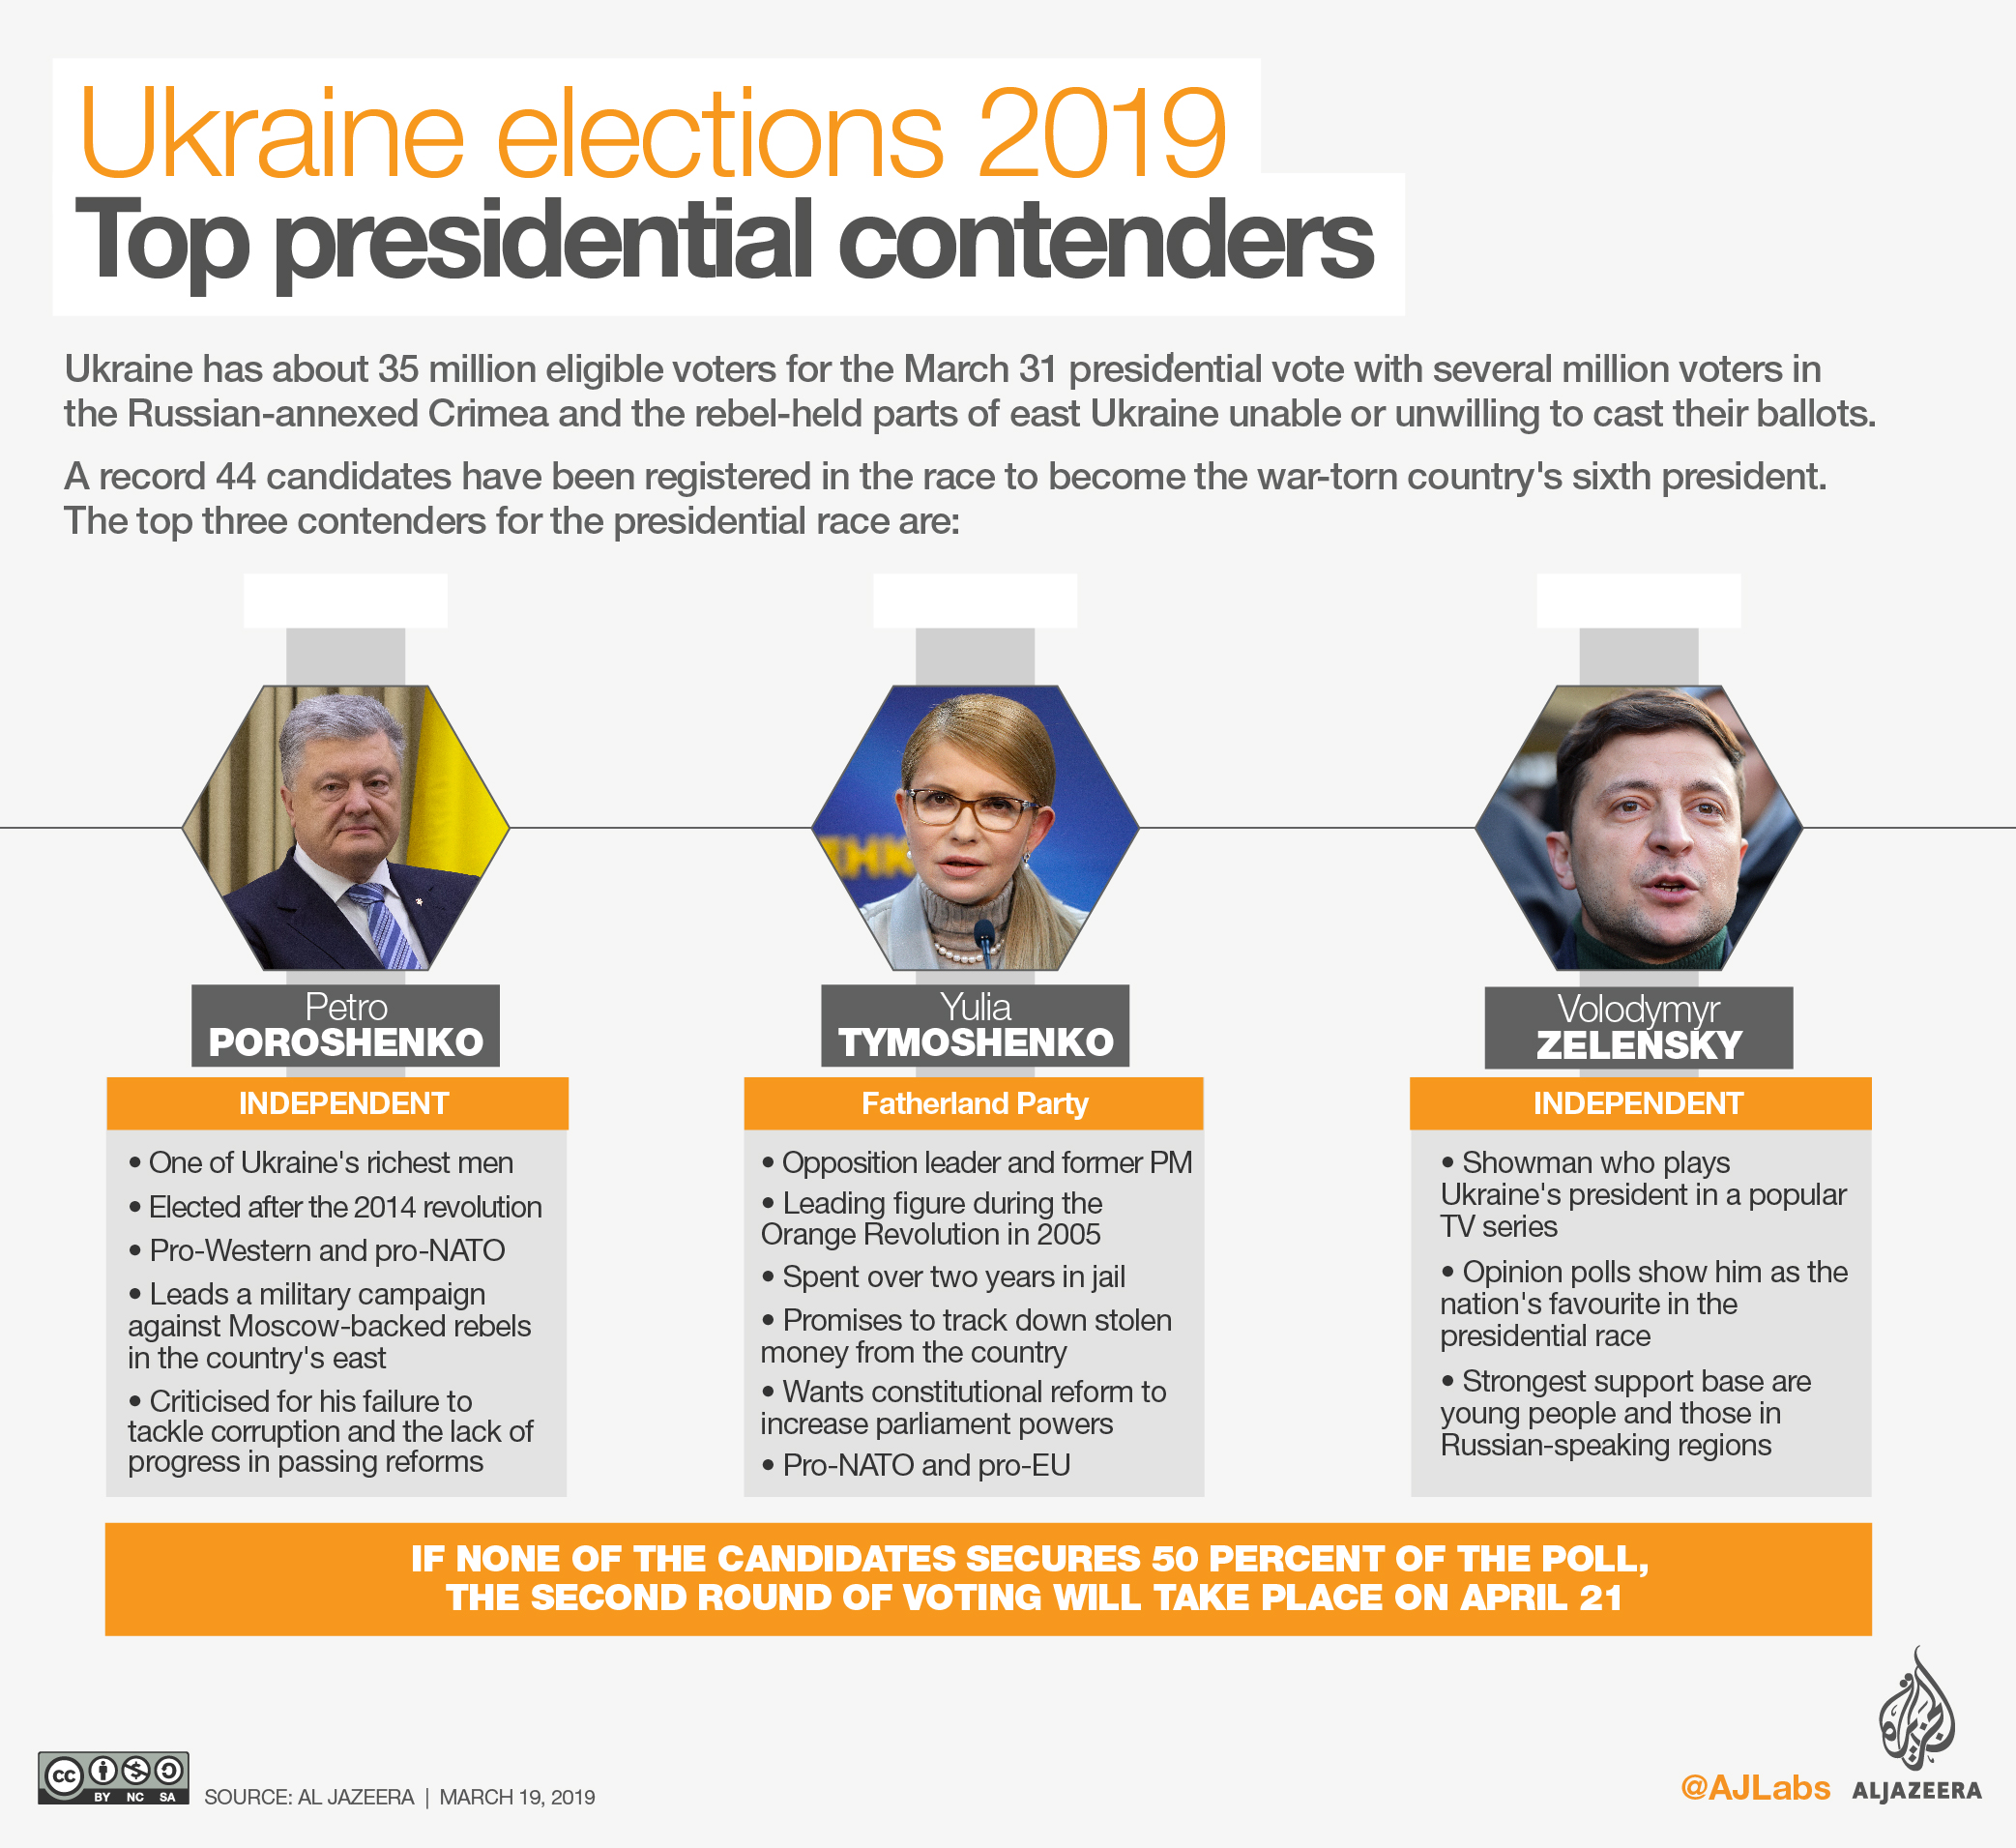 Comedian leads final polls as Ukraine prepares to elect president